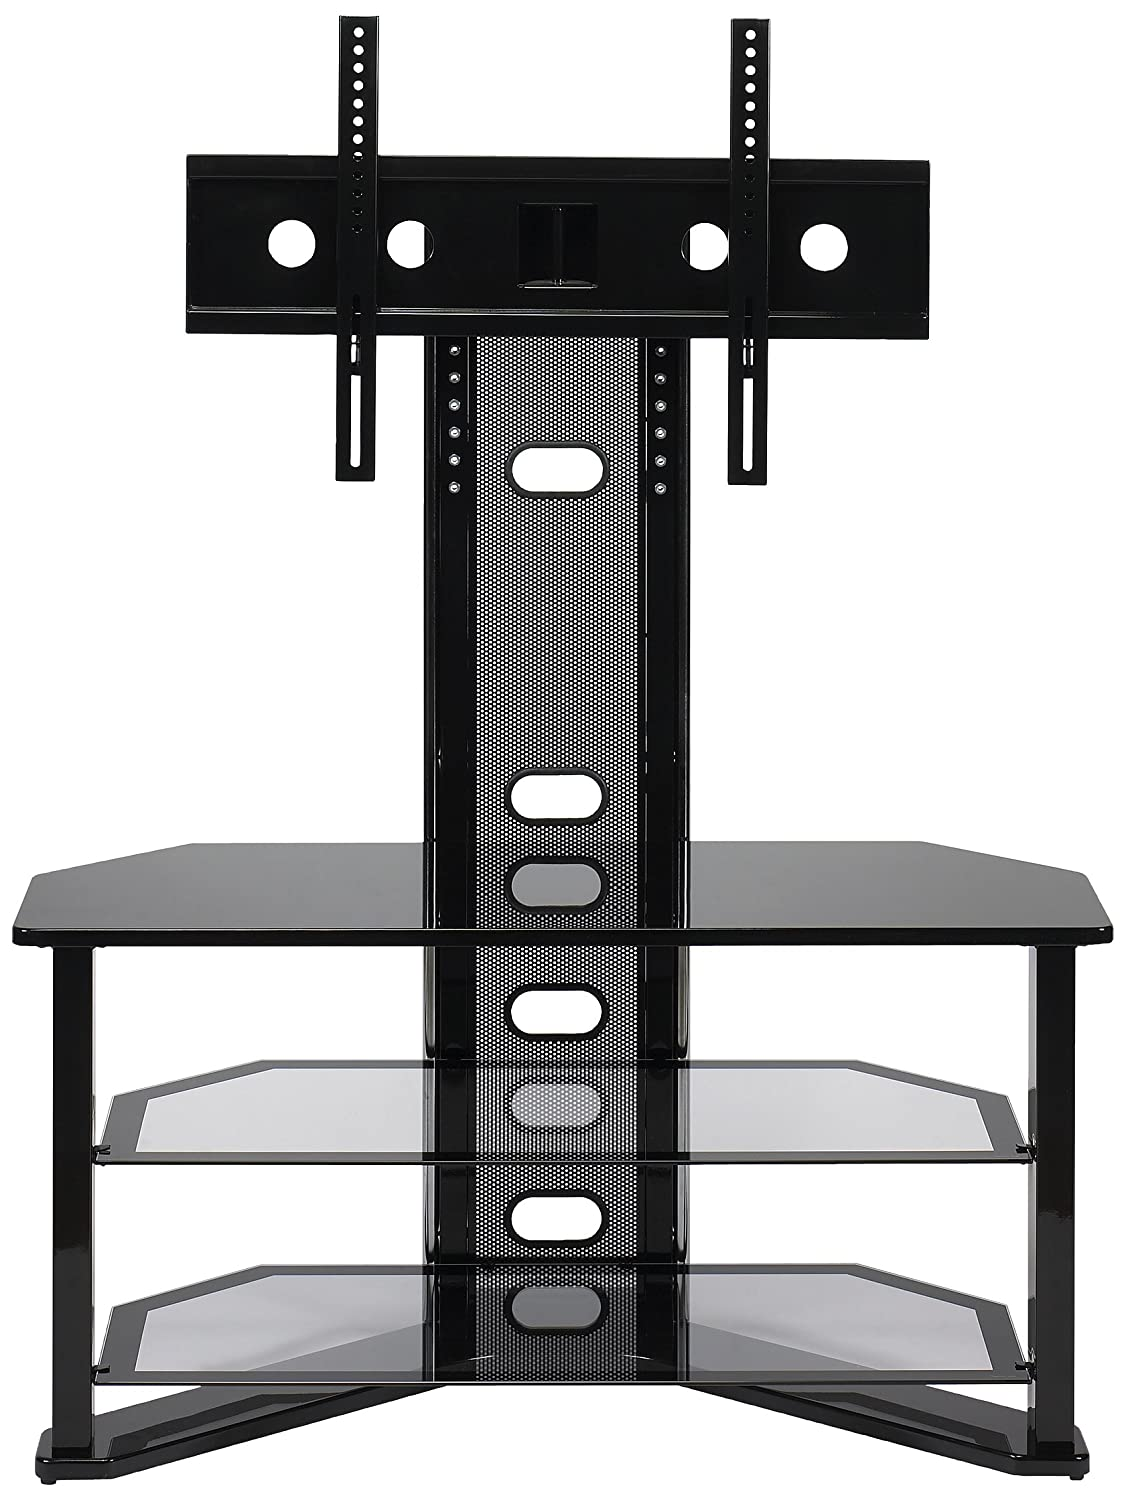 panel led screens lcd display fits adjustable flat pedestal portable height tv mount dp pole it vesa stand floor